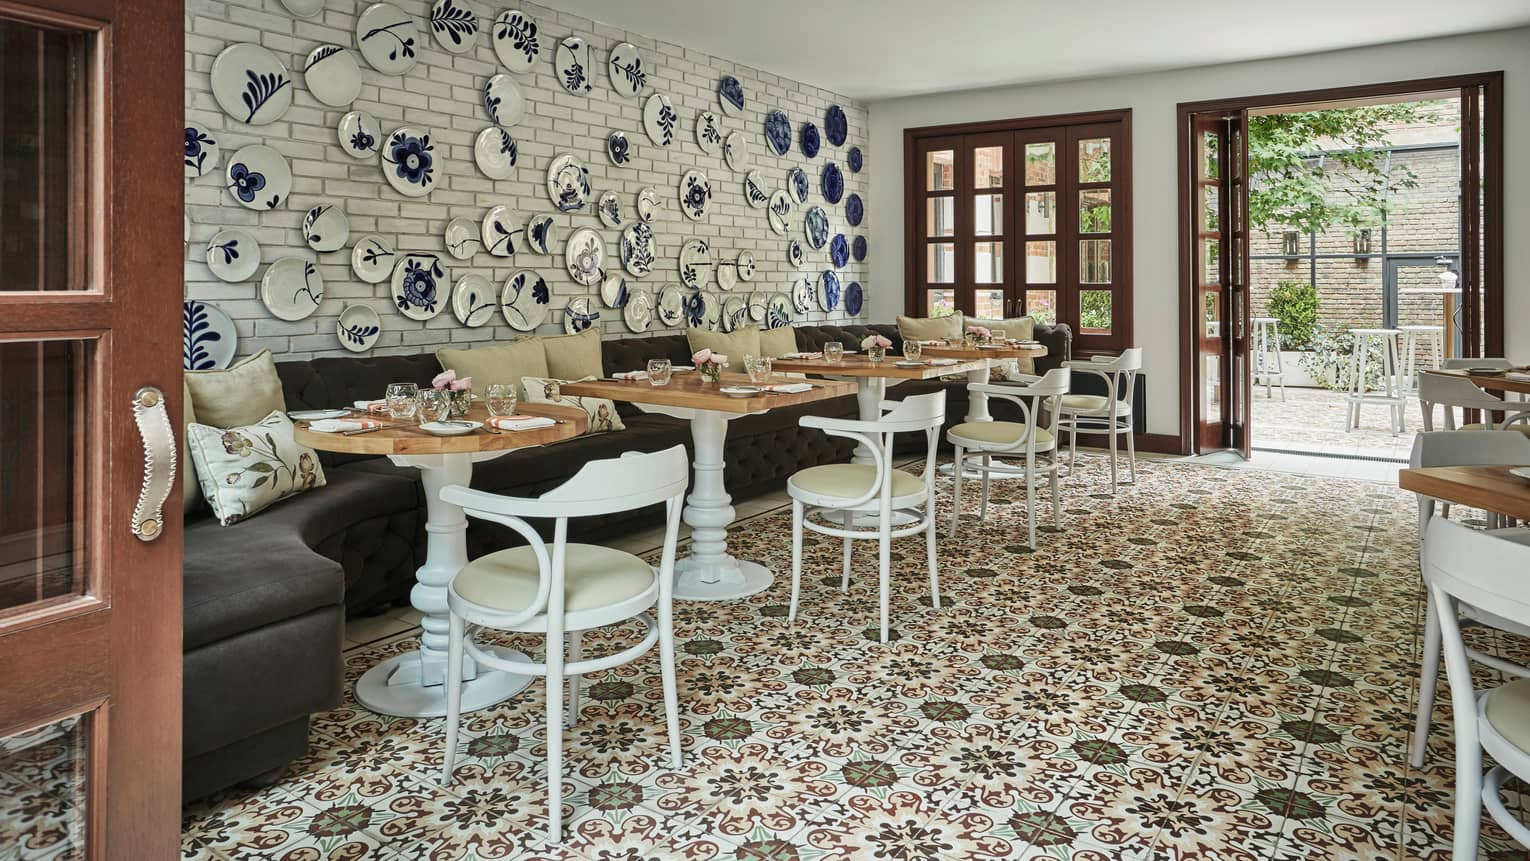 Blue-and-white decorative plates on wall over velvet banquette, cafe tables and chairs, tile floor